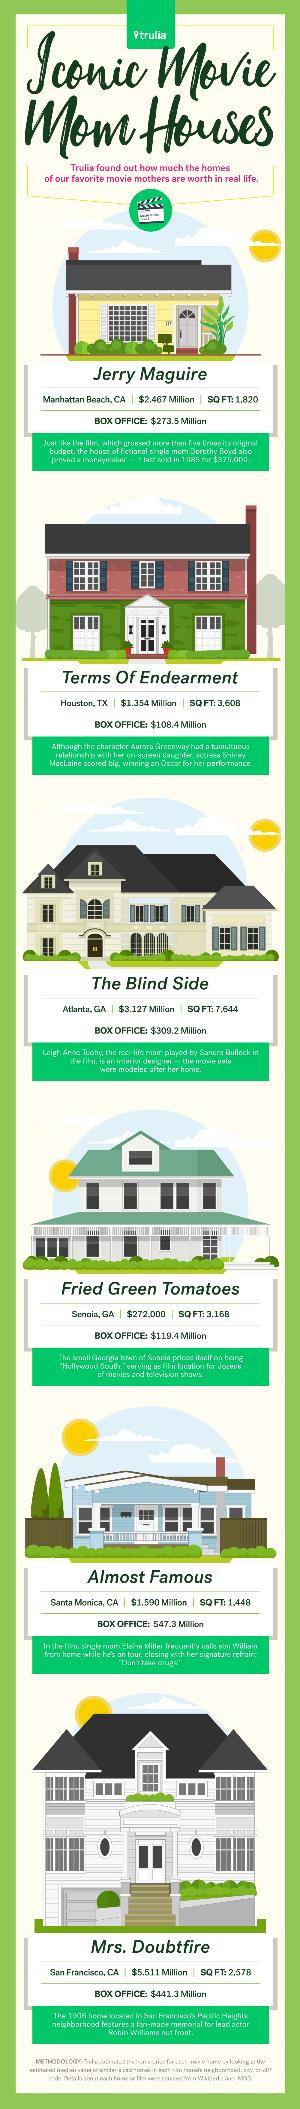 Trulia_Mothers_Day_Houses_infog